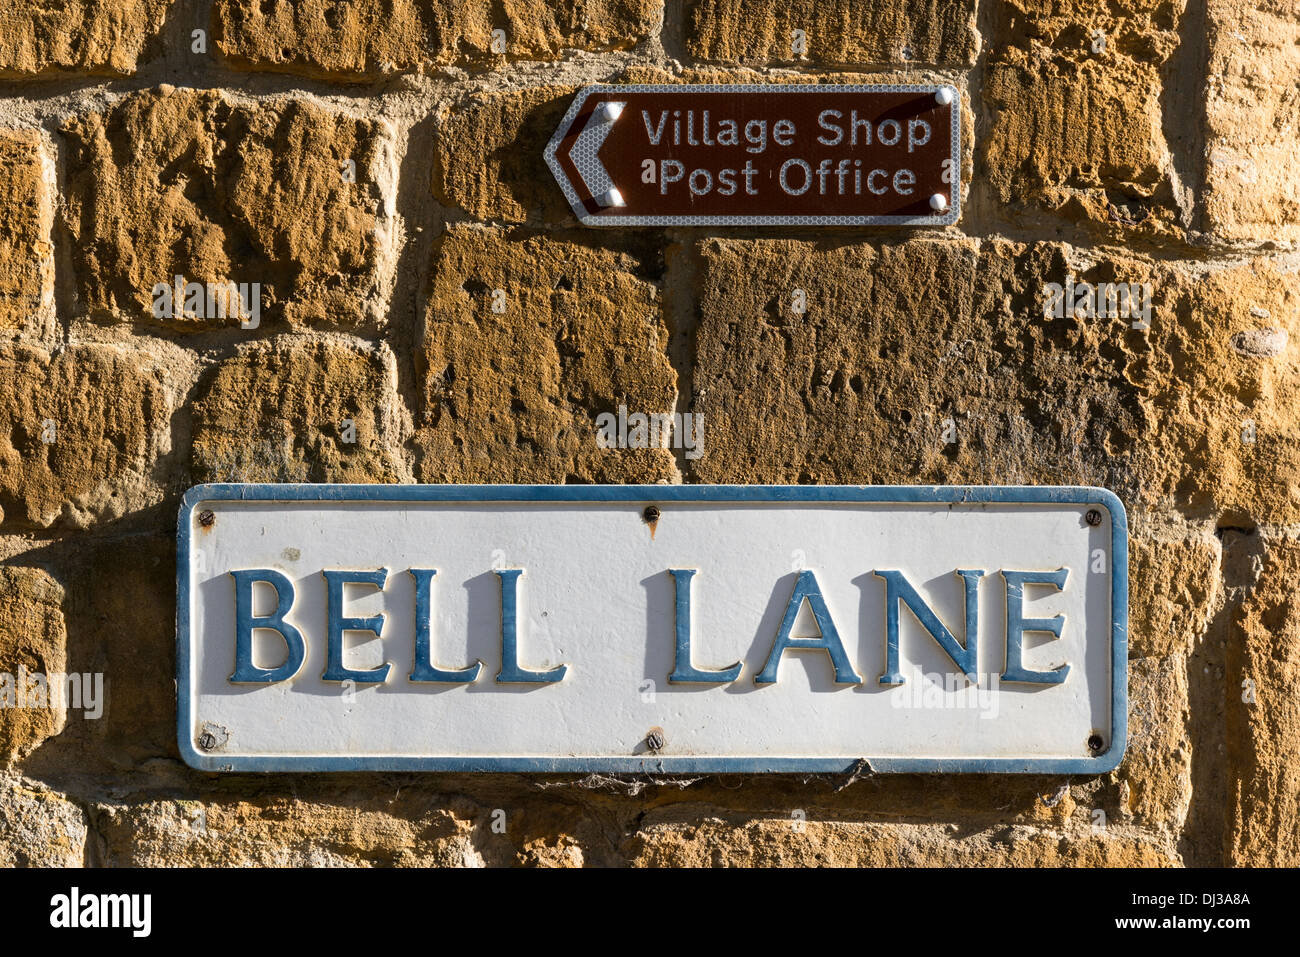 Road name sign and direction sign to the village shop and post office on a cotswold limestone wall in Blockley The cotswolds UK - Stock Image